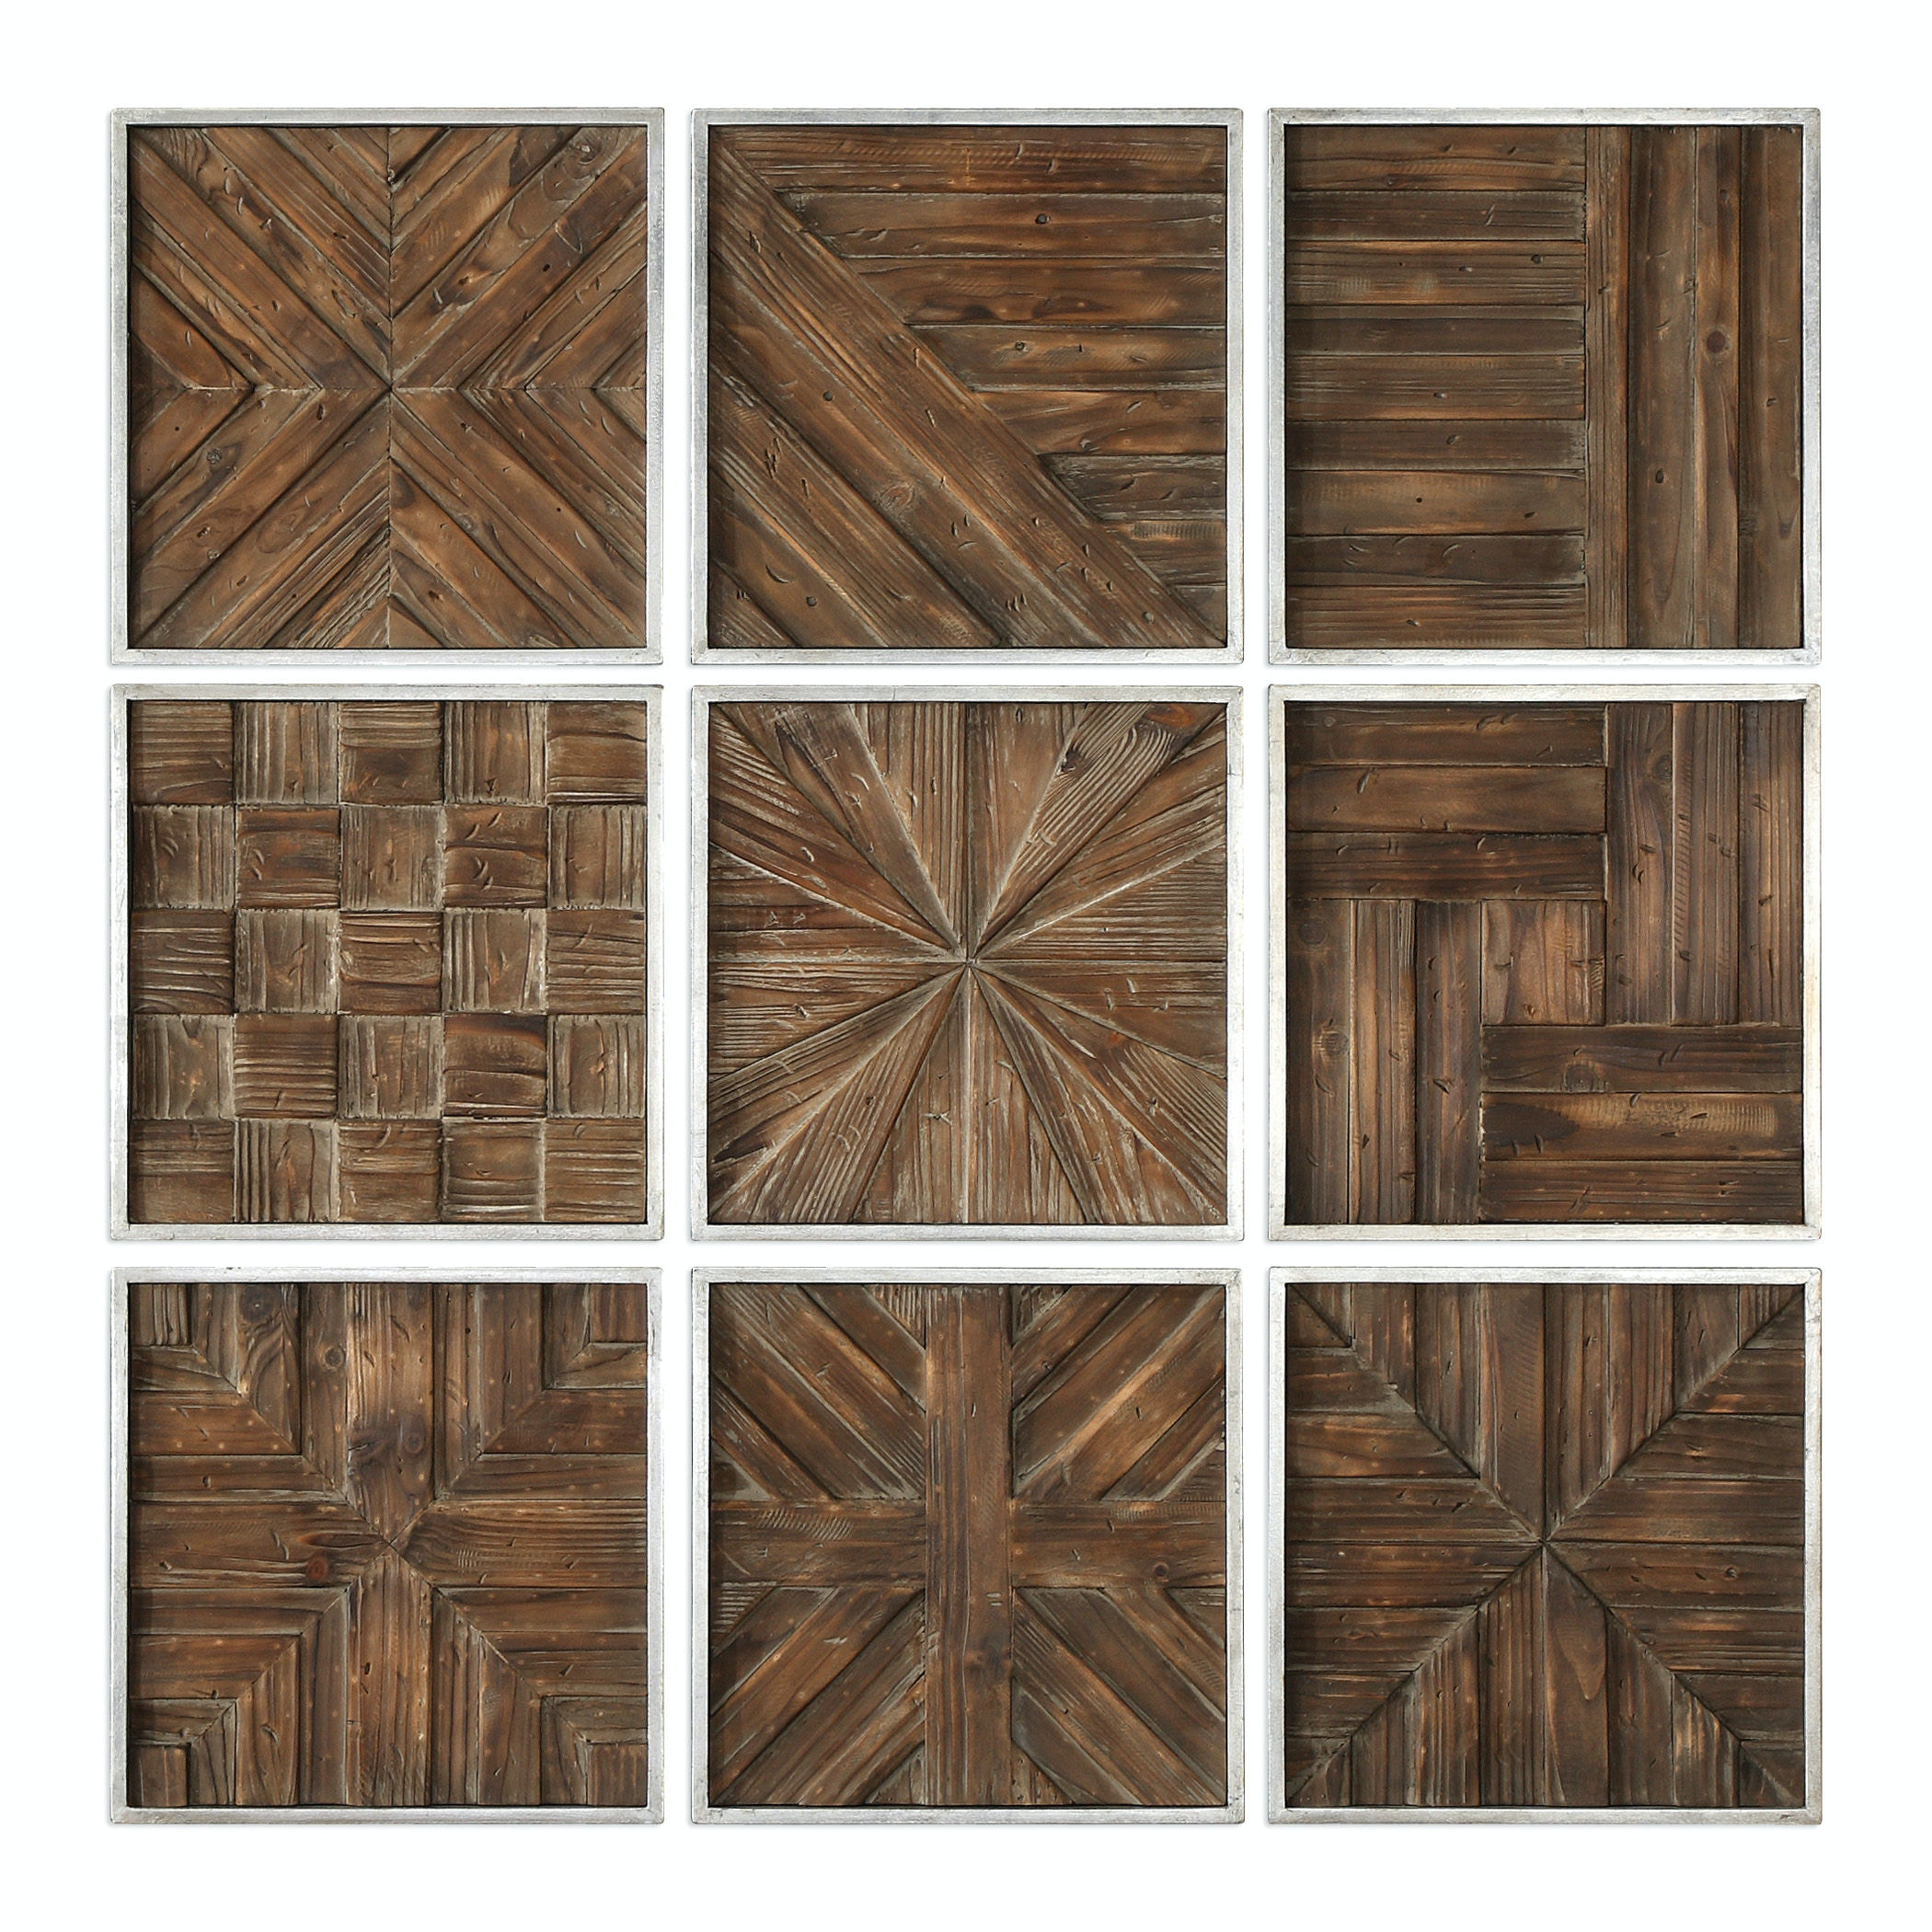 Charmant Uttermost Bryndle Rustic Wooden Squares S/9 04115